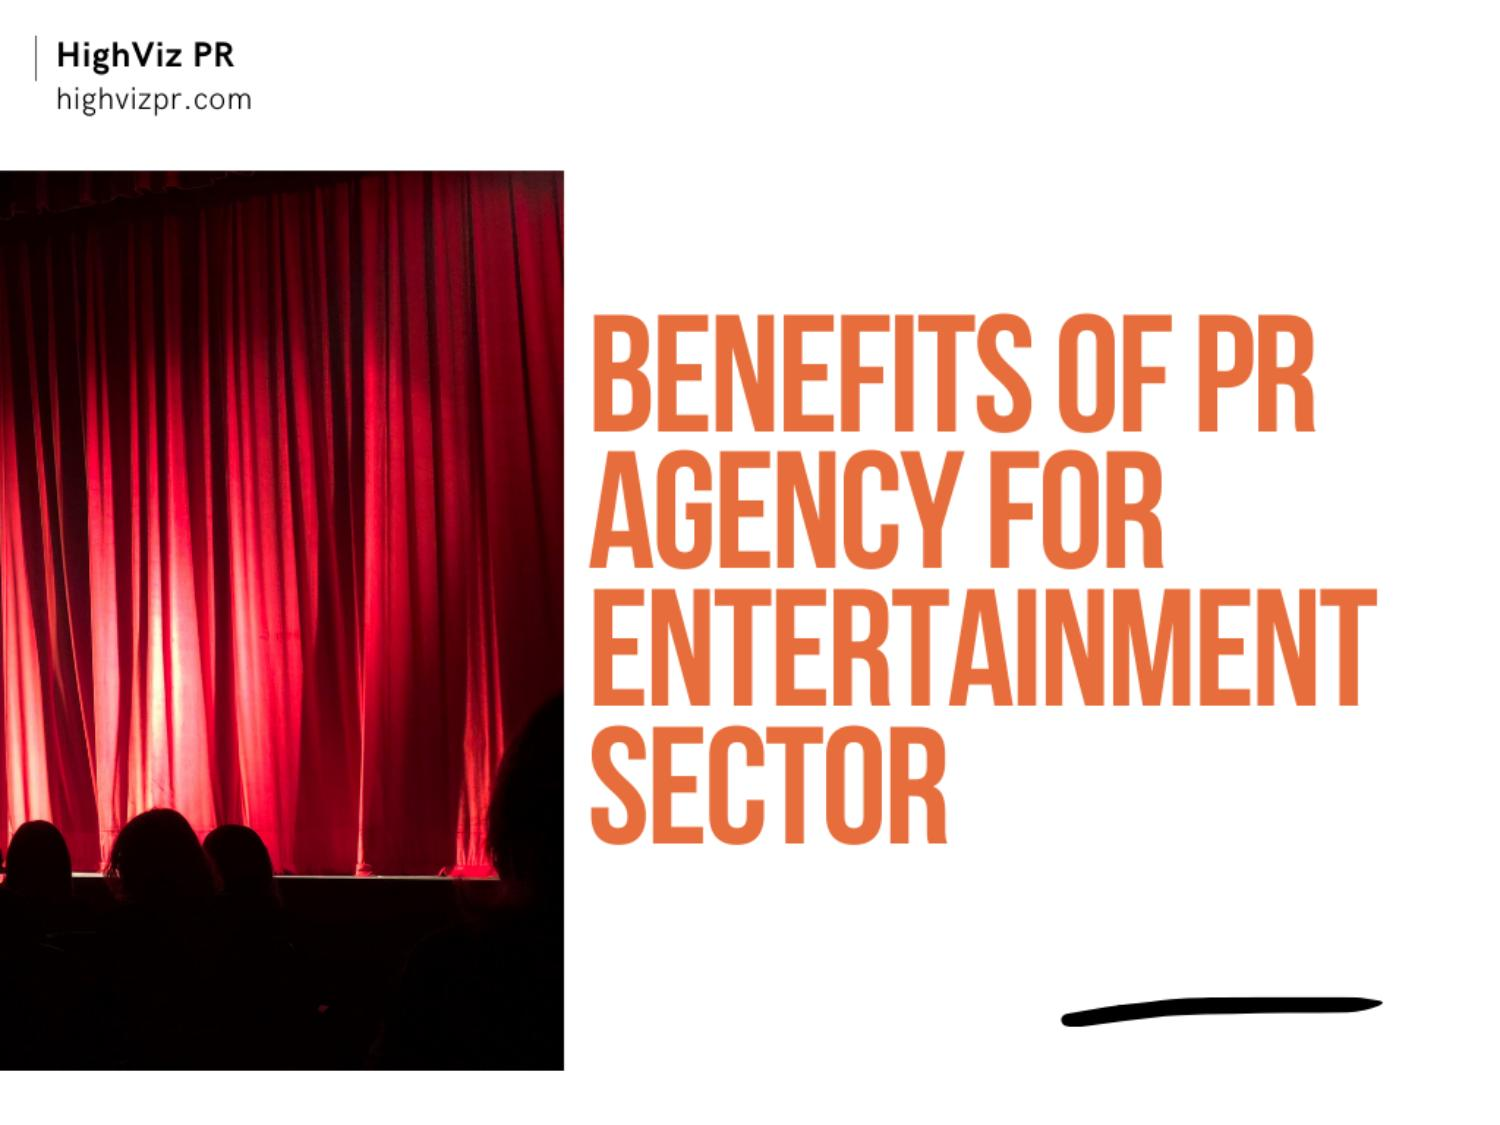 benefits of PR agency for entertainment sector